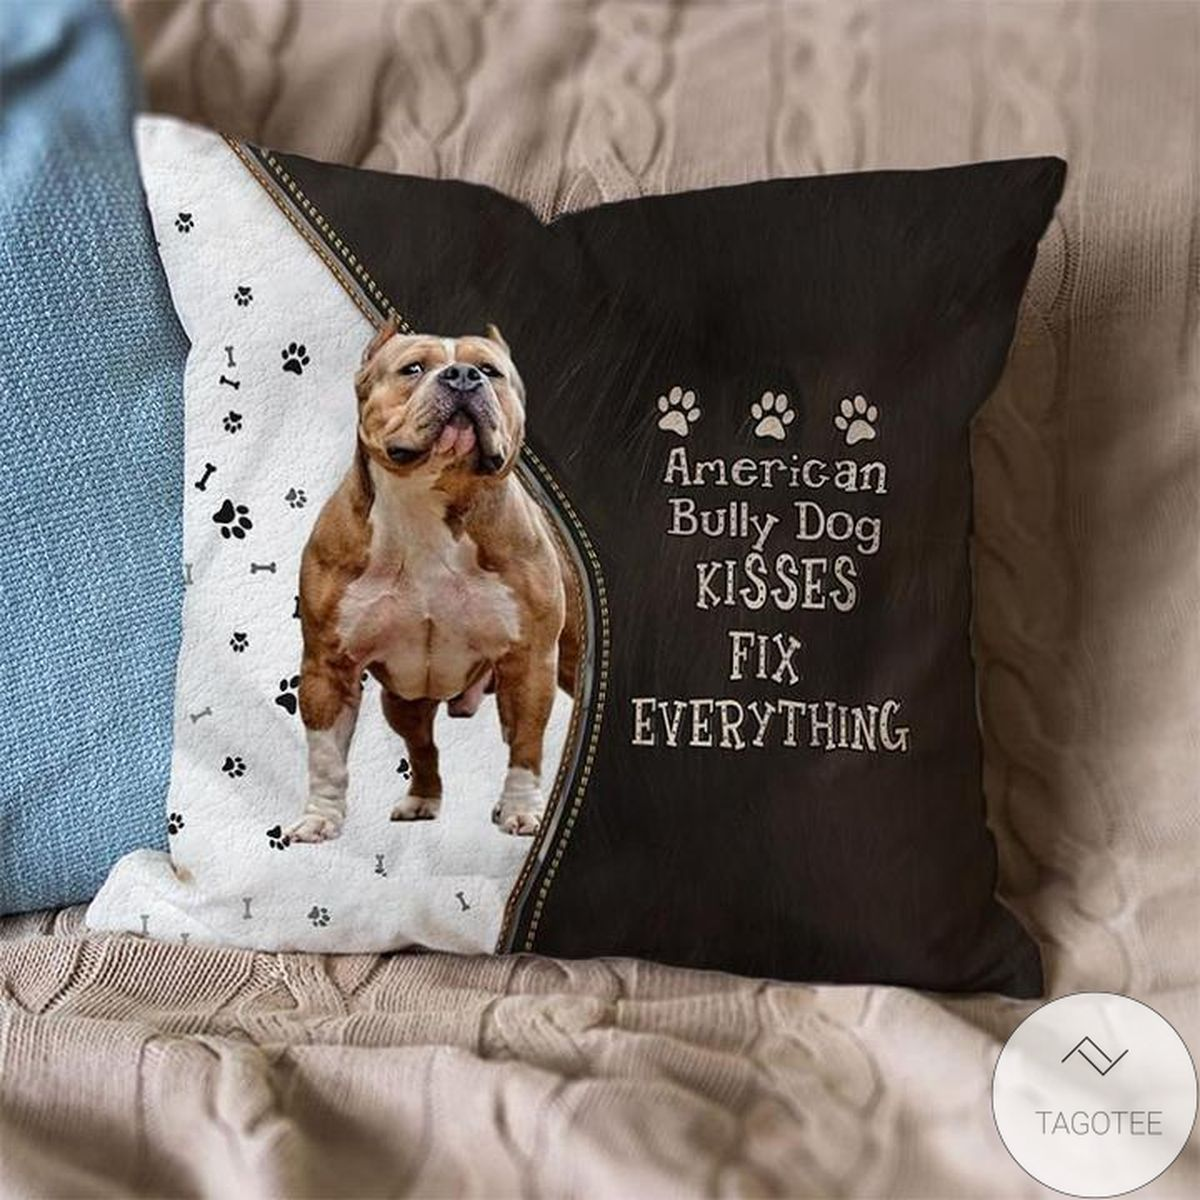 Limited Edition American Bully Dog Kisses Fix Everything Pillowcase